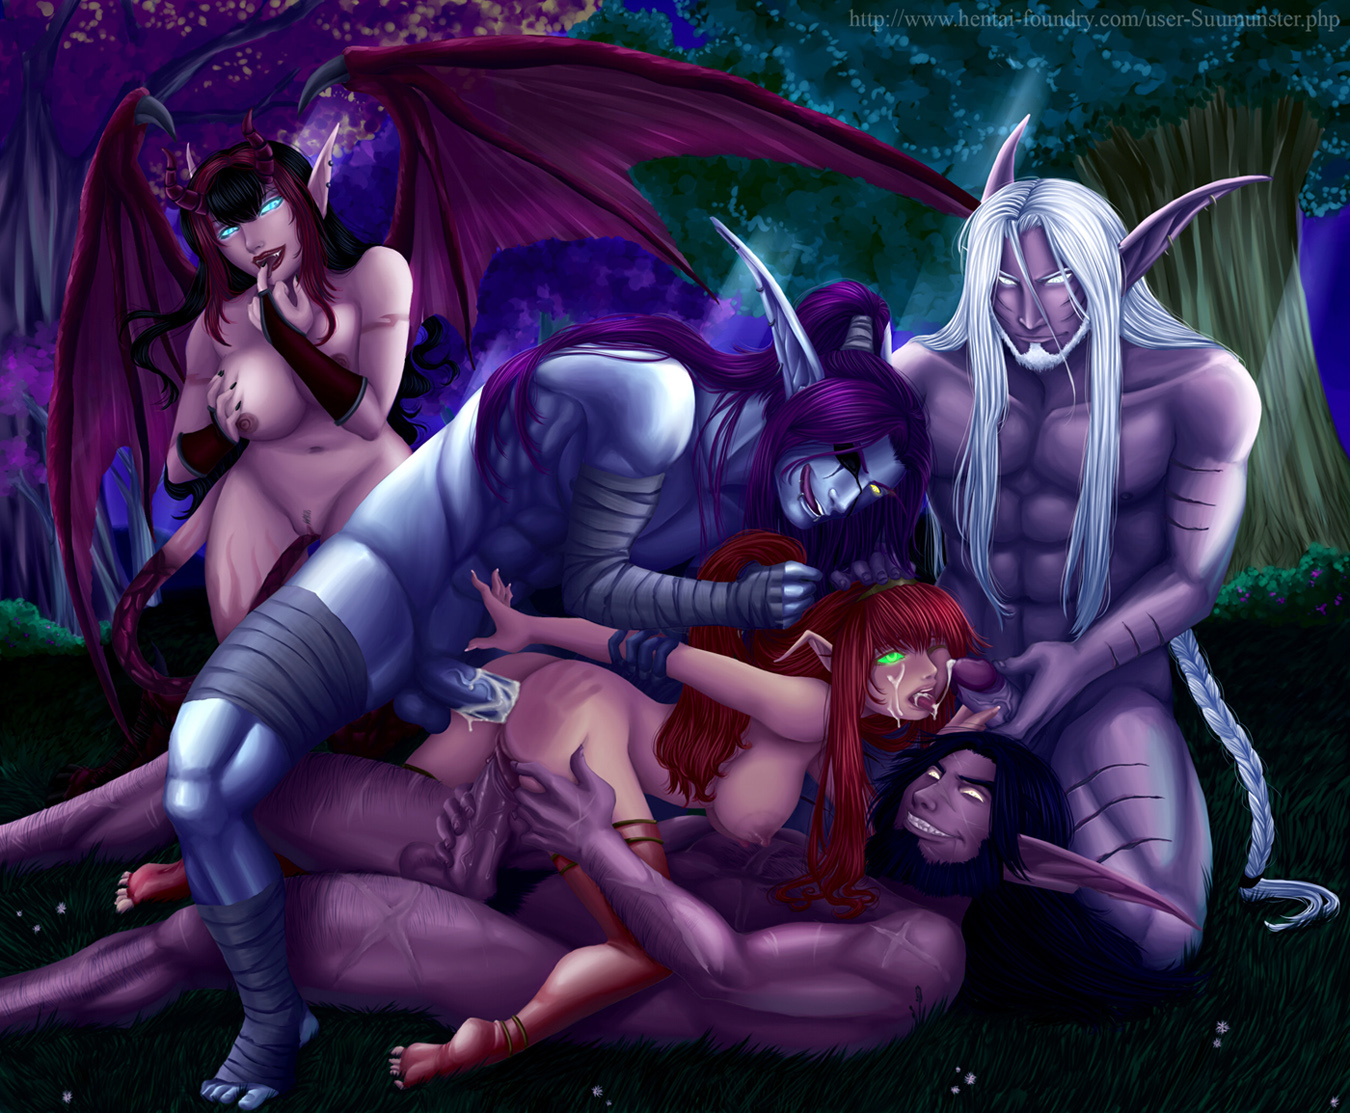 Night elf porn videos hentai picture